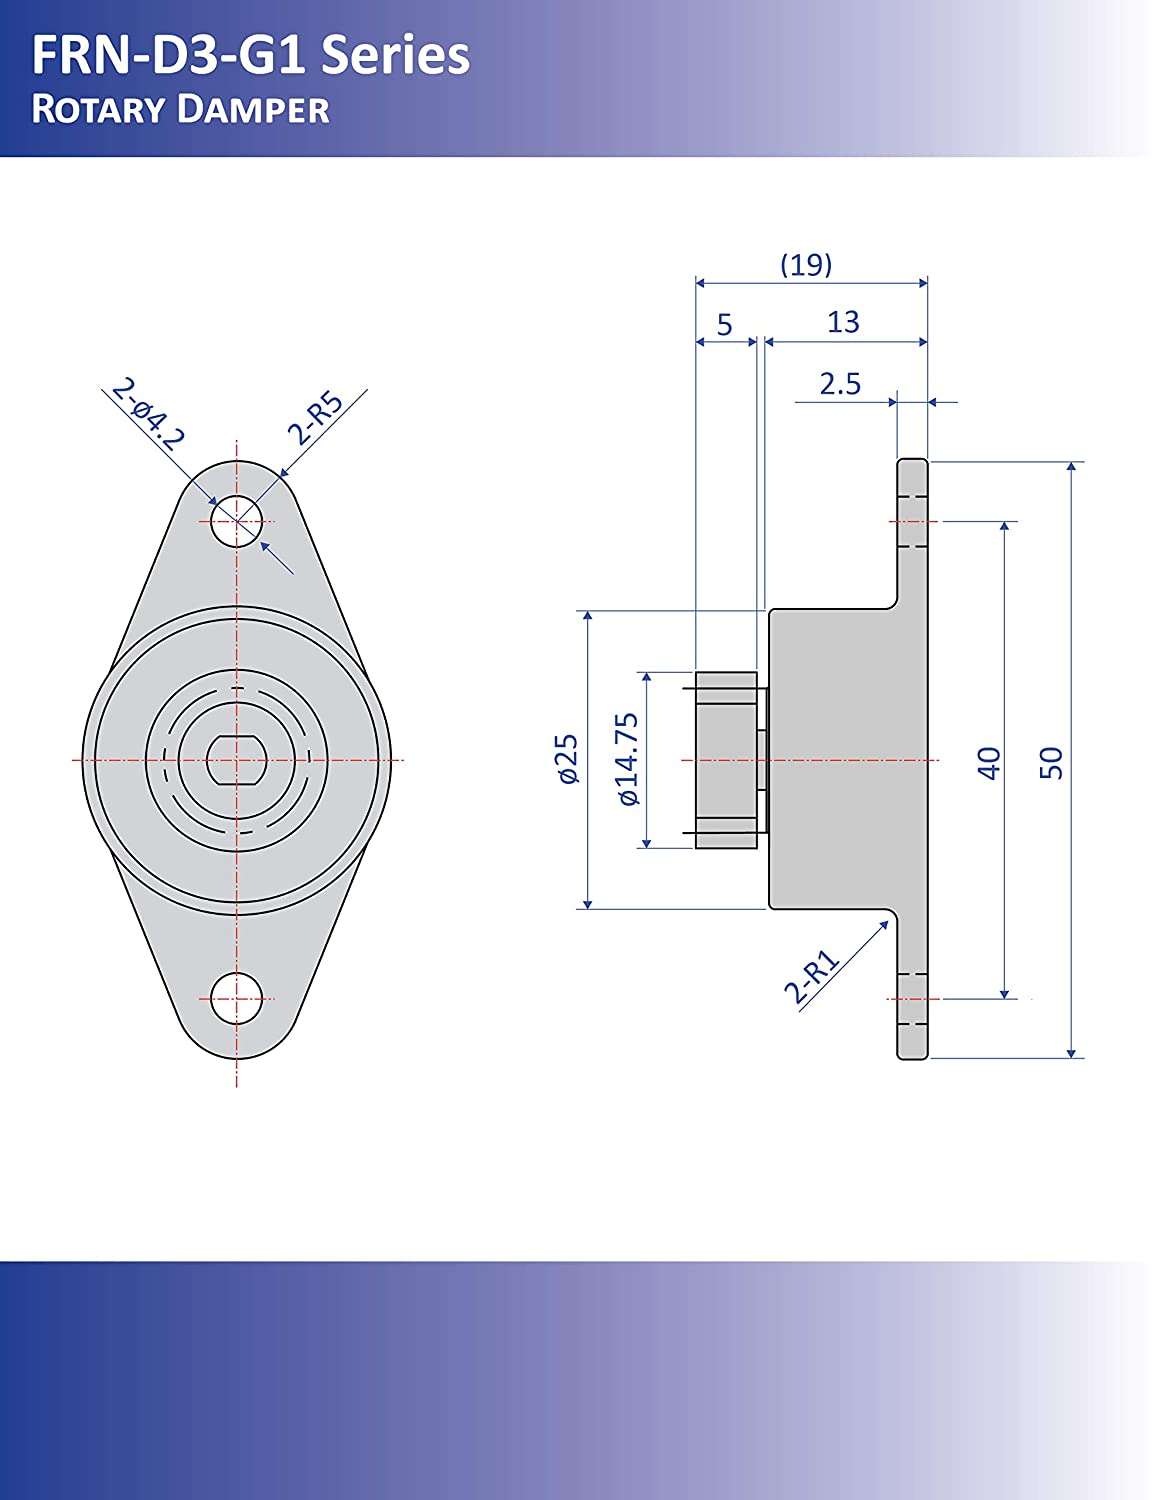 50 mm x 25 mm x 13 mm Bansbach Easylift FRN-D3-L252 G1 Rotary Dampers//Standard